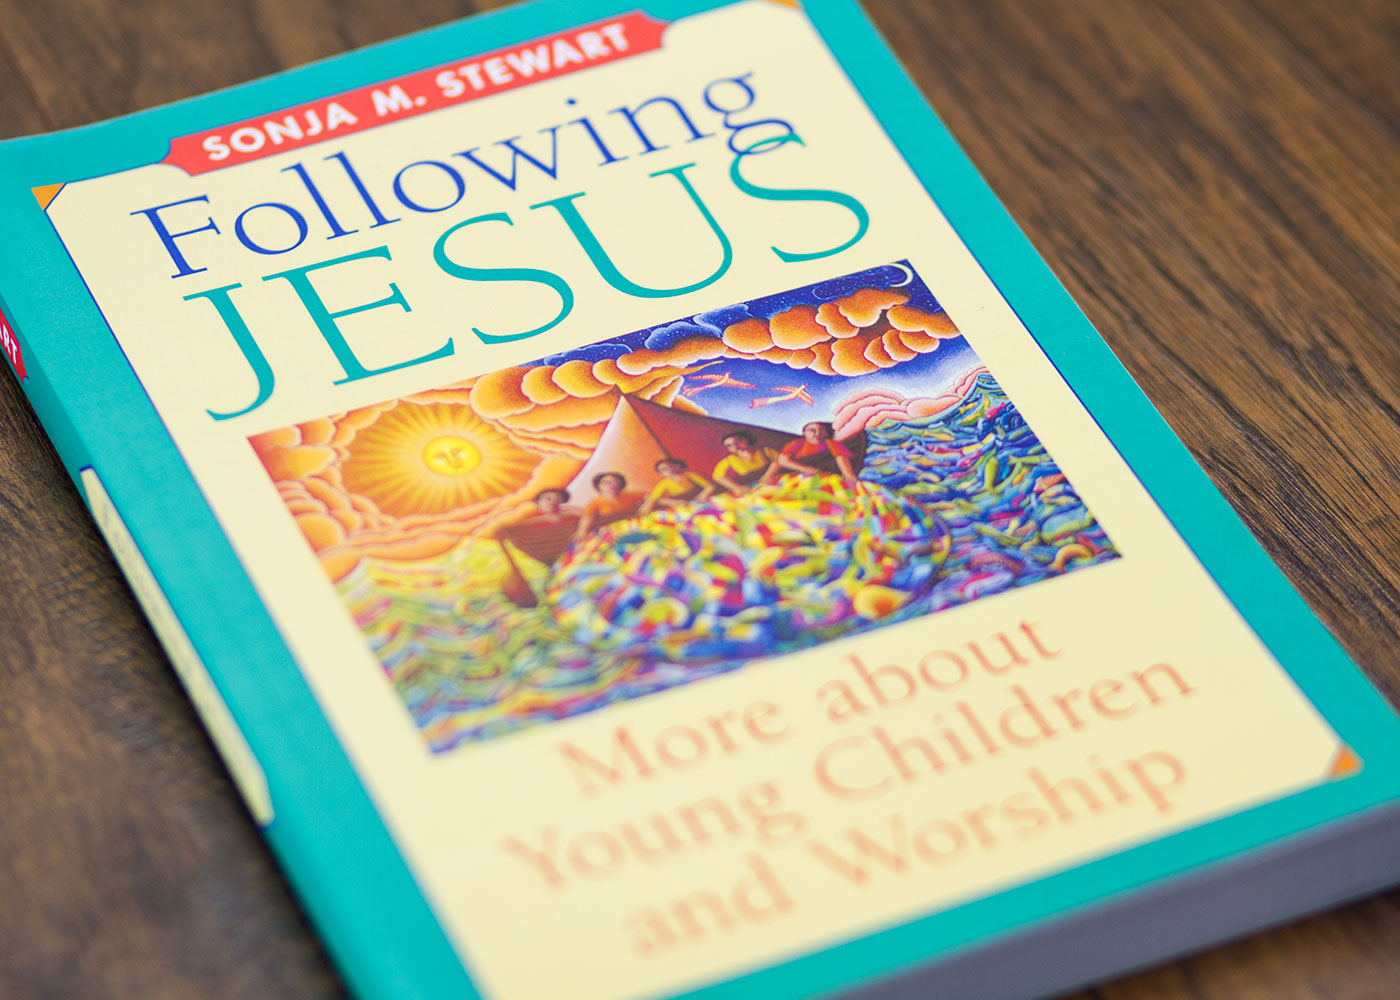 Following Jesus (Spiral Book)